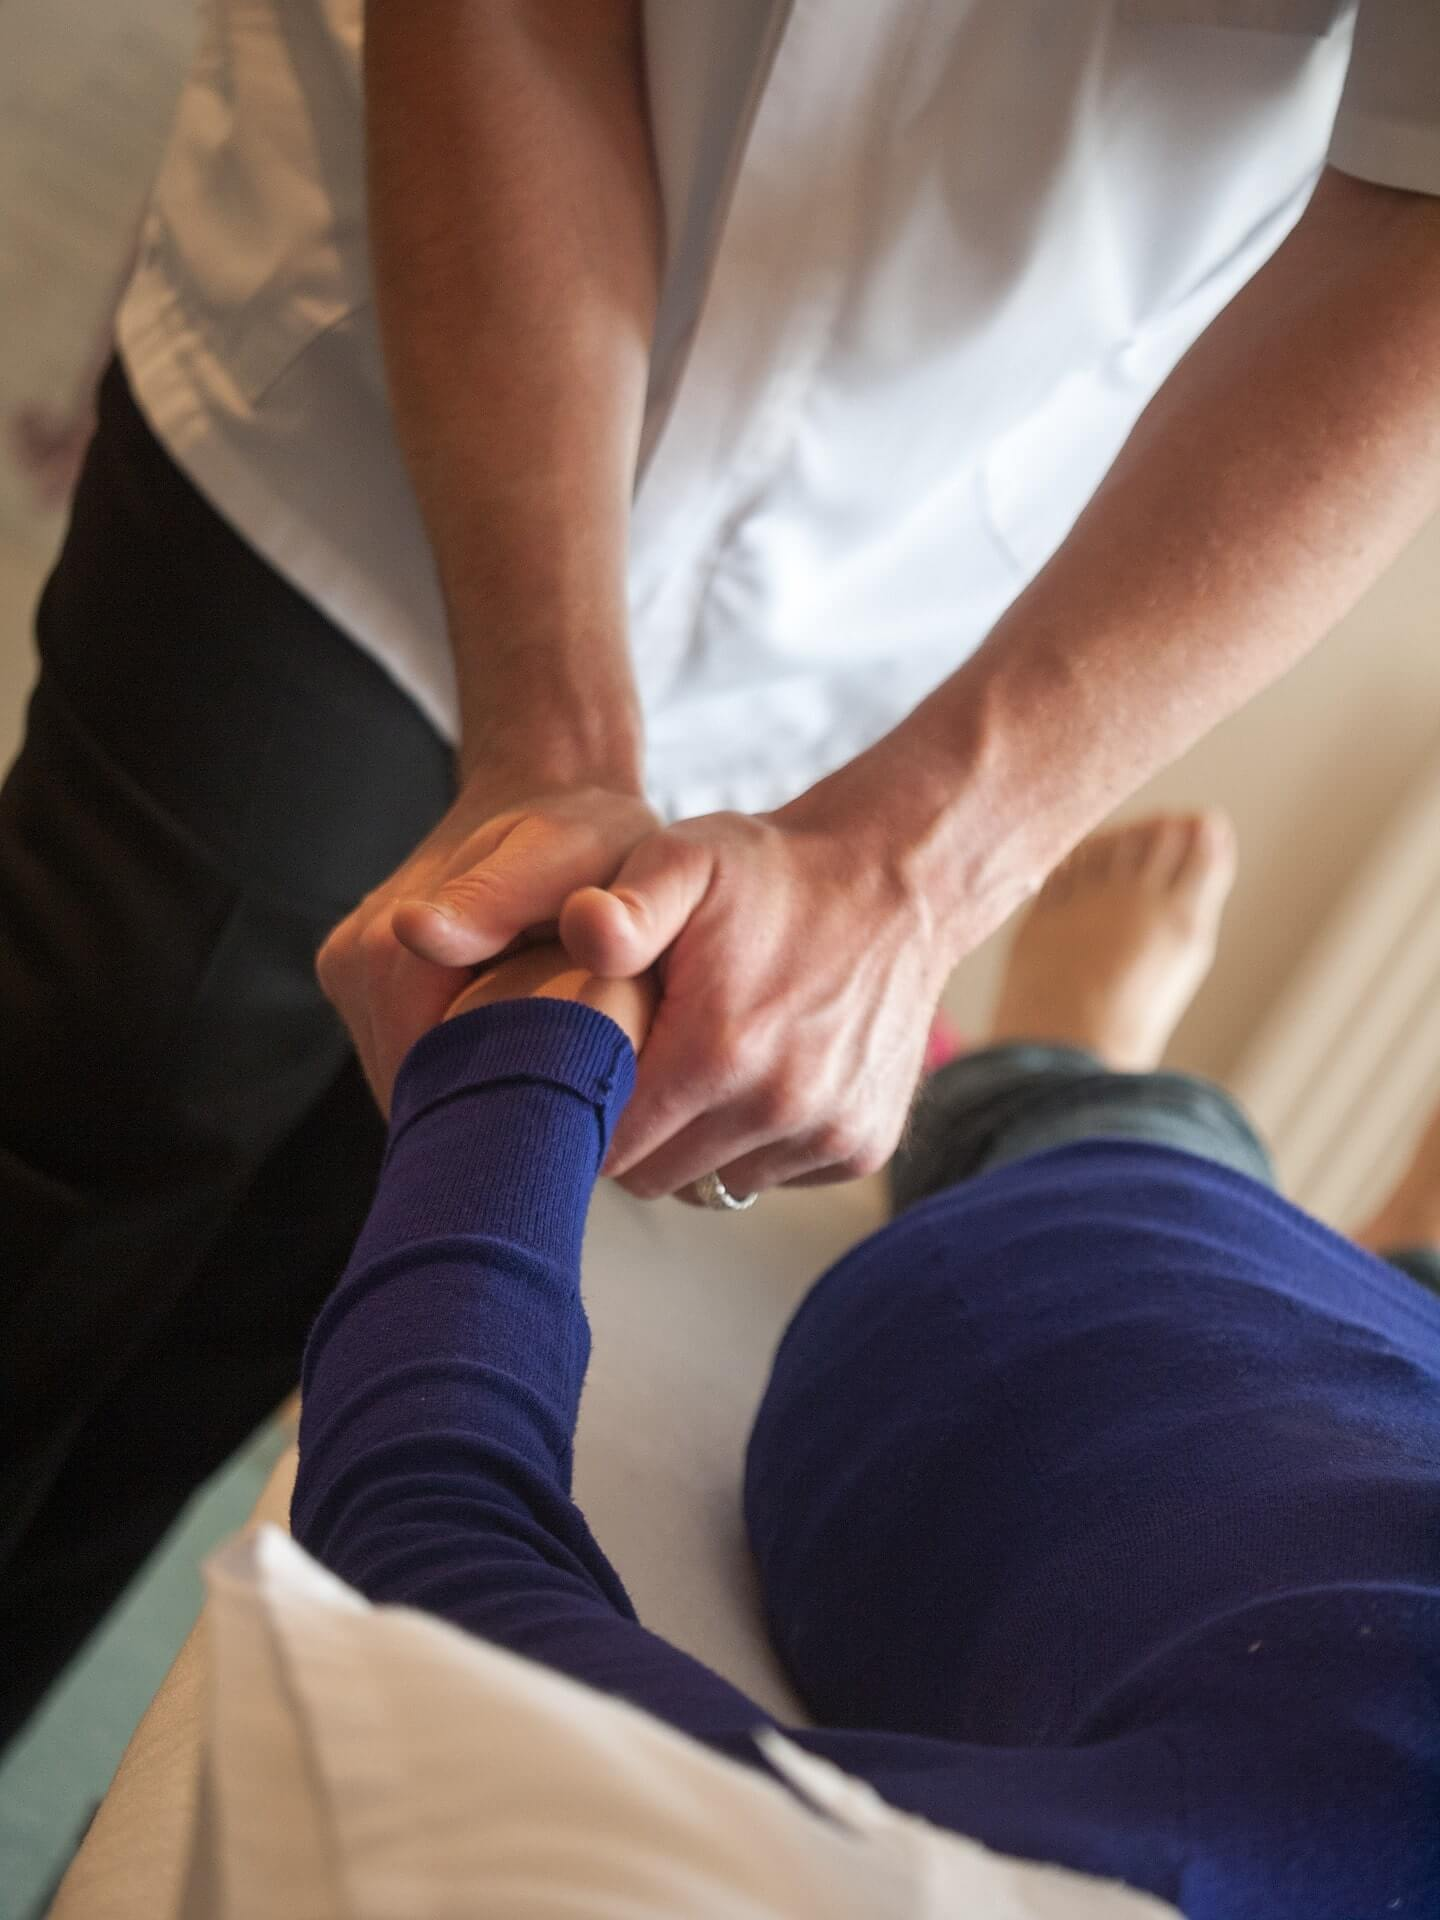 Carpel tunnel syndrome chiropractic treatment